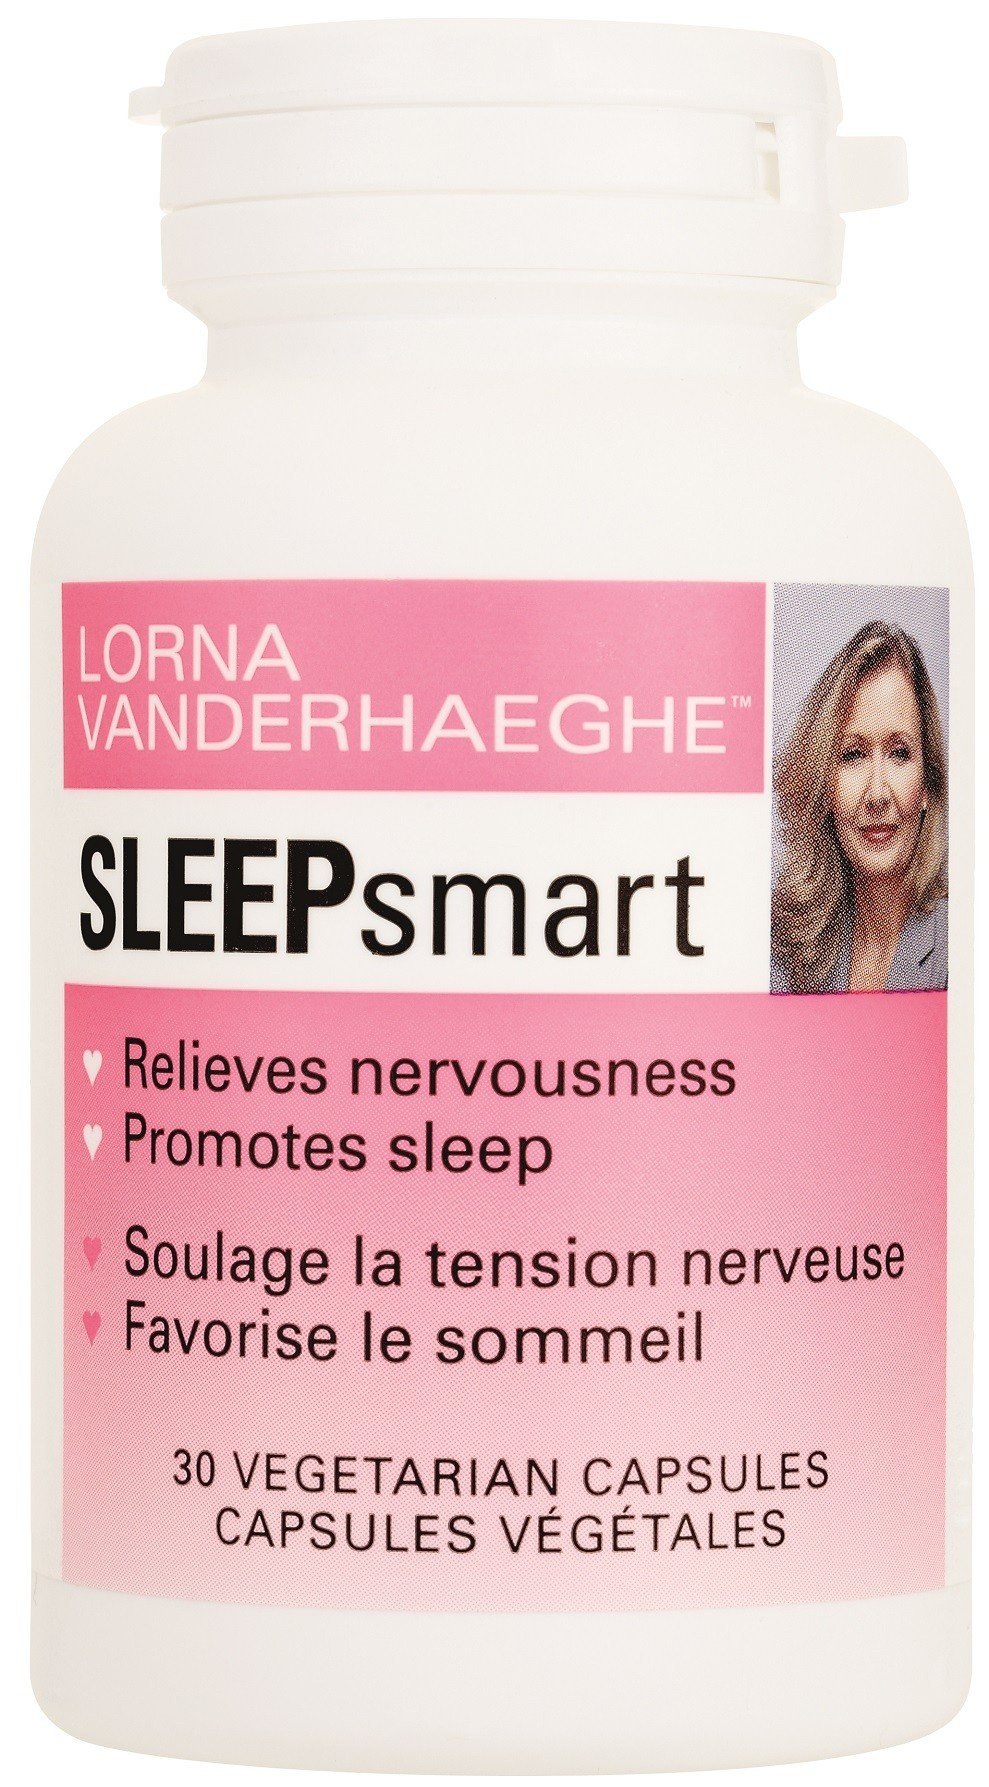 Get More Sleep Naturally With Lorna VanderhaegheSLEEPsmart